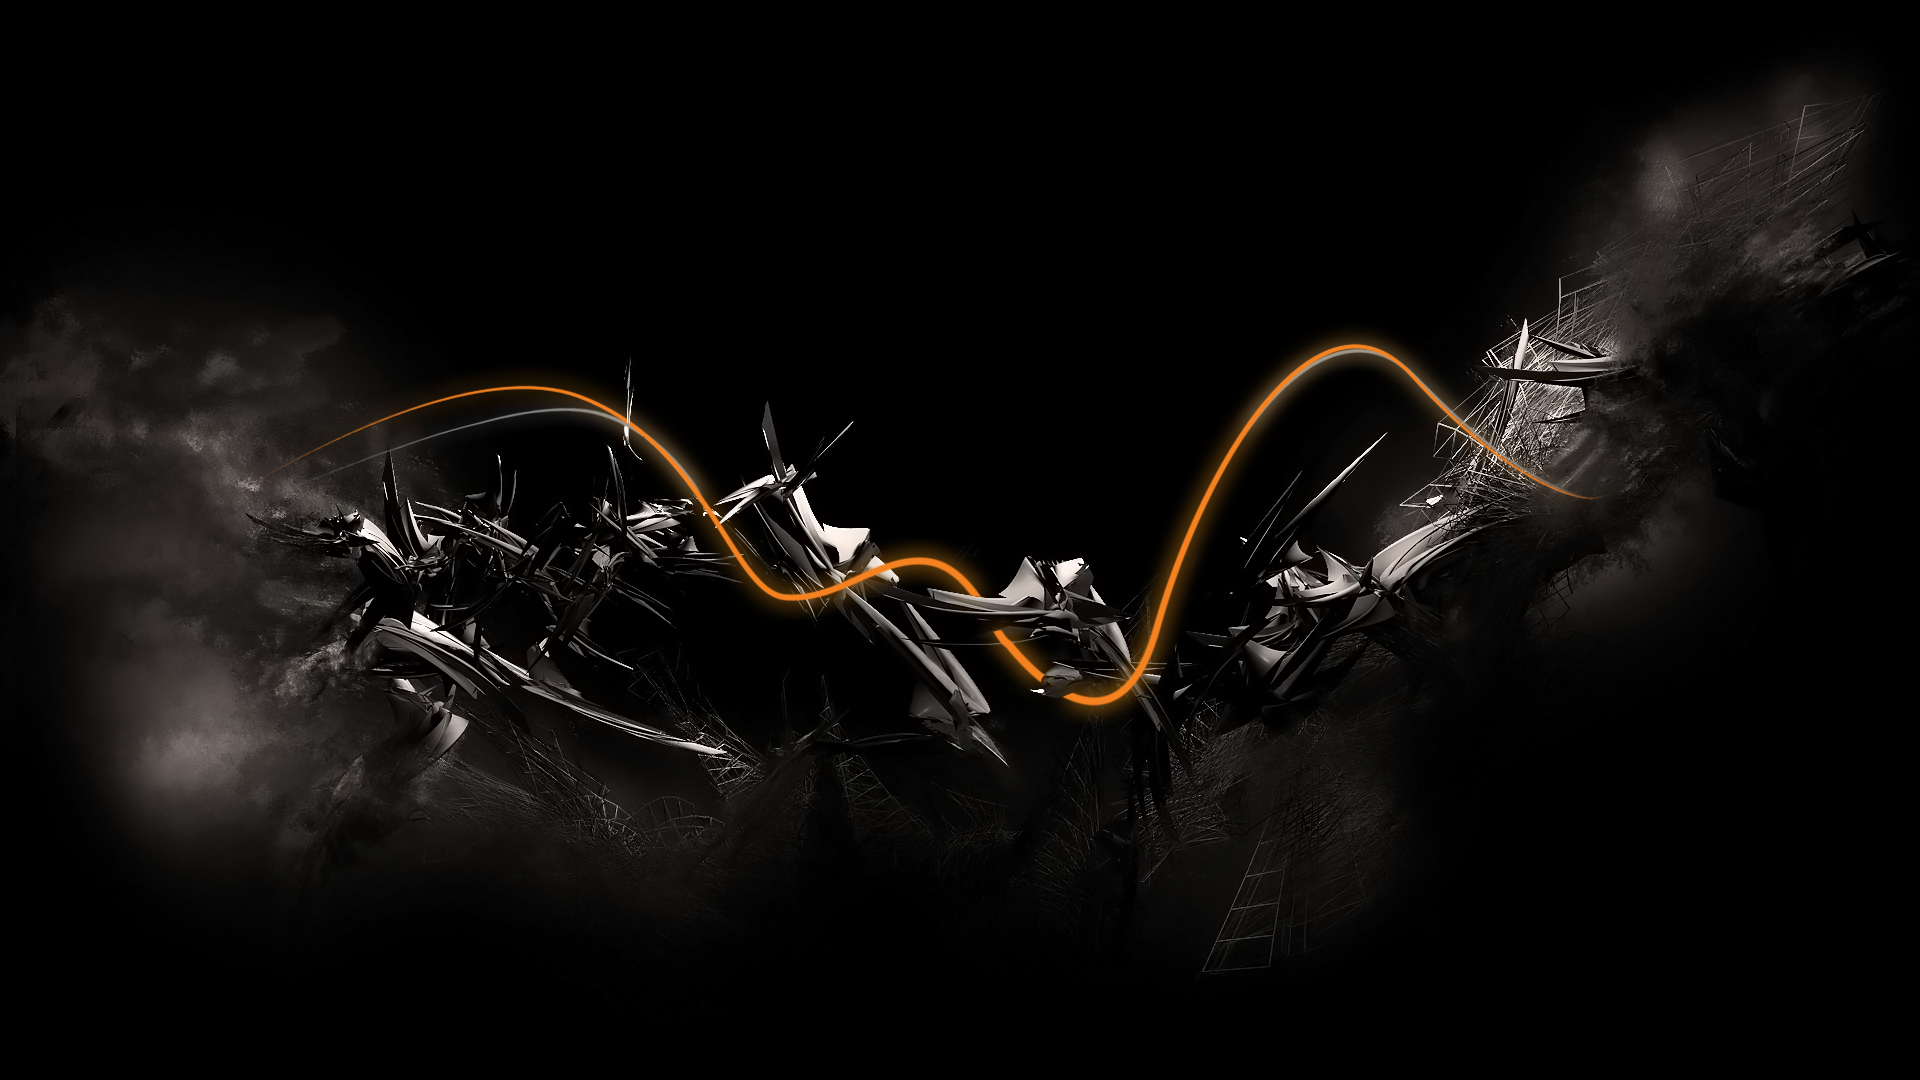 black-Abstract-Black-CD-wallpaper-wp3803195